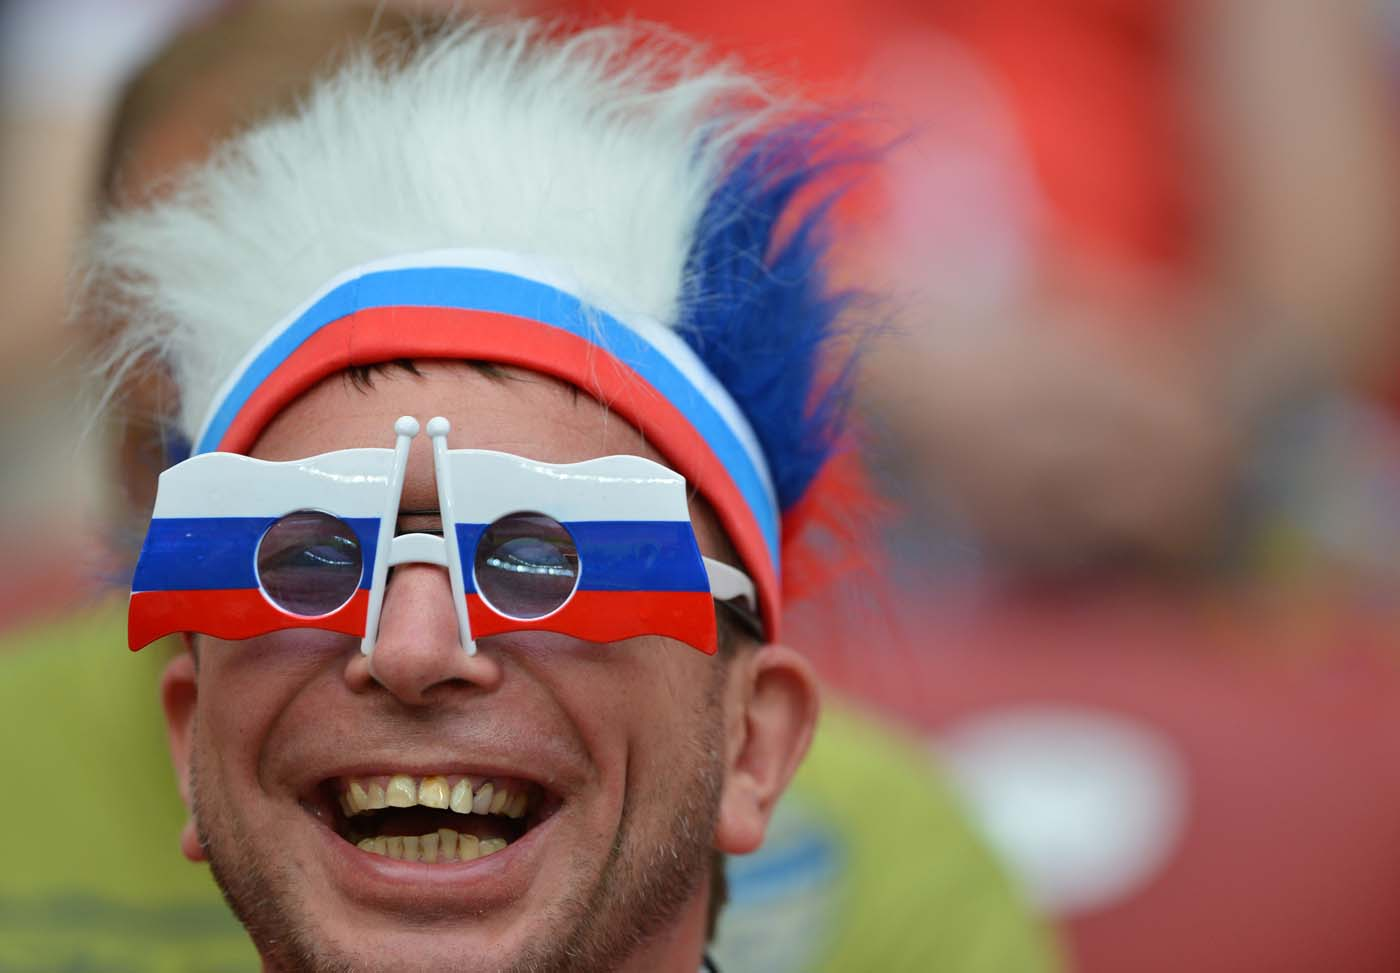 A Russian supporter is pictured prior to the Euro 2012 championships football match Poland vs Russia on June 12, 2012 at the National Stadium in Warsaw. (Gabriel Bouys/AFP/Getty Images)